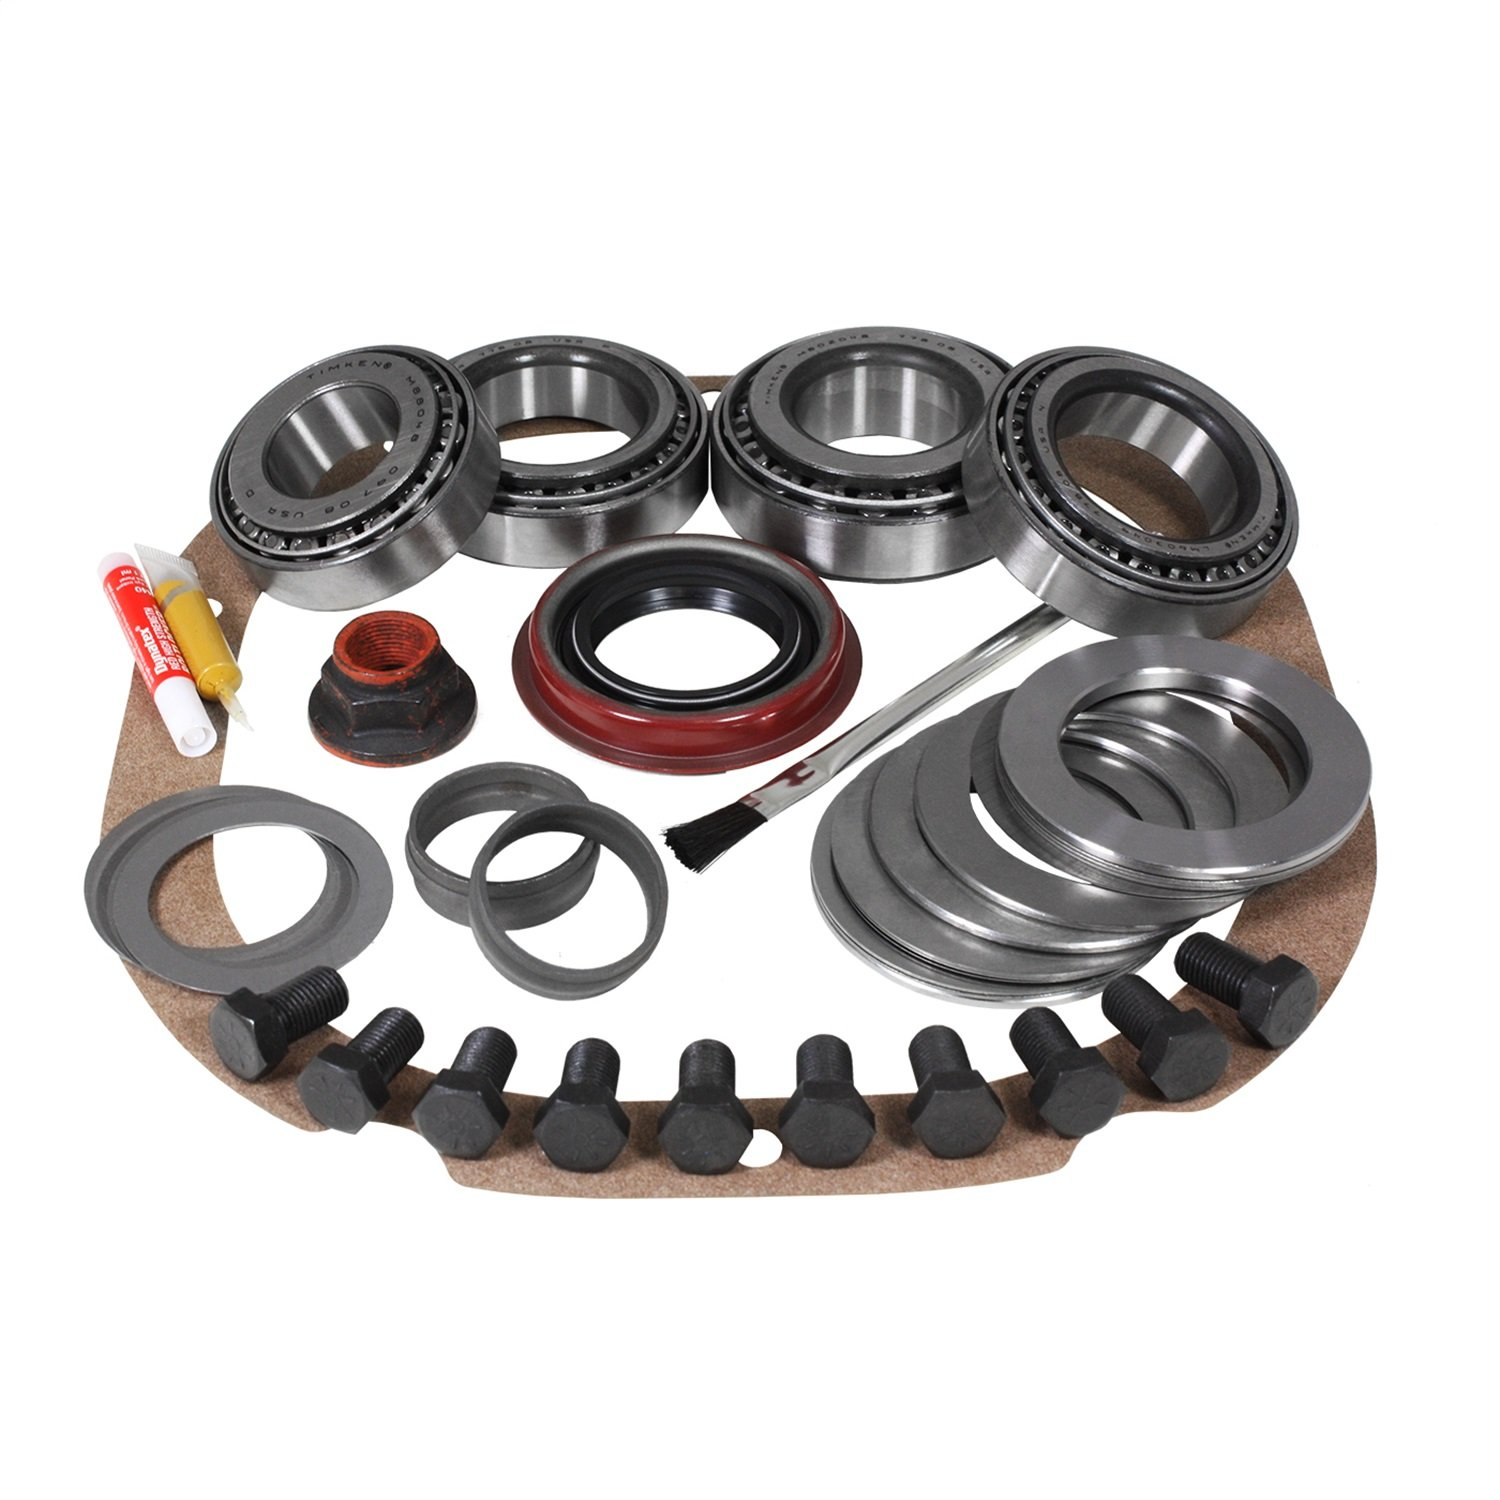 USA Standard Gear ZK F8.8 Ford 8.8'' Differential Master Overhaul Kit